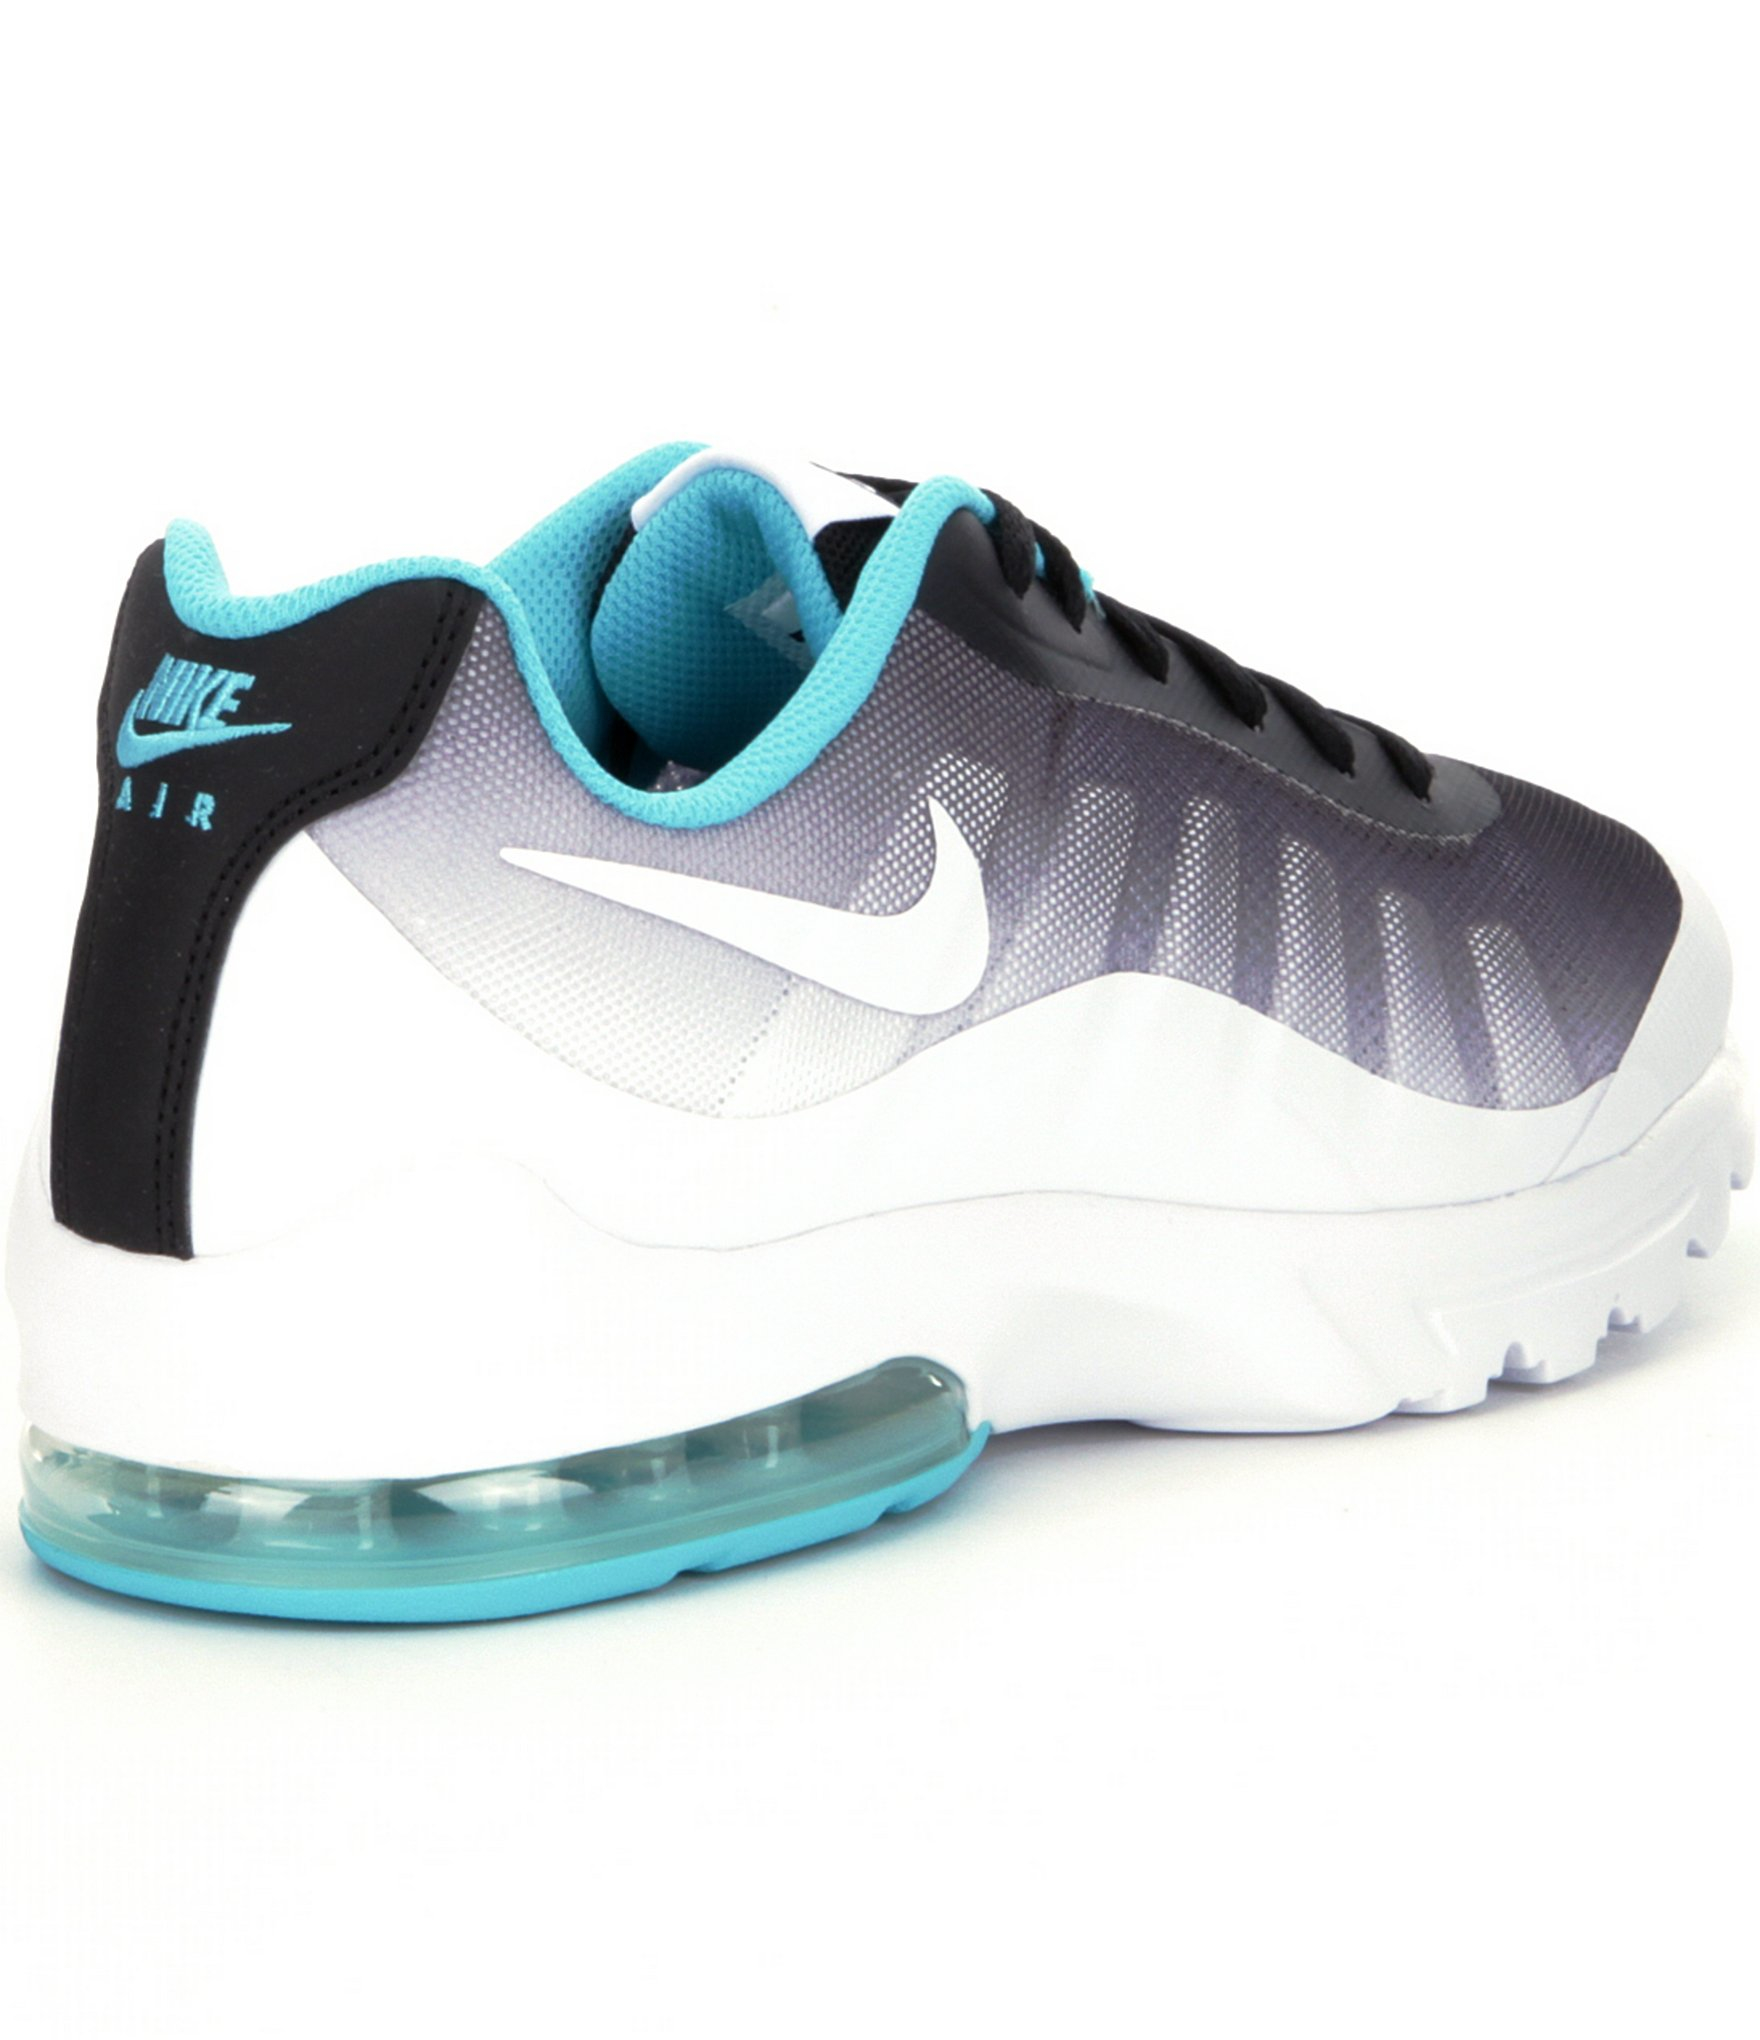 00ffc8cbbd ... reduced lyst nike mens air max invigor print lifestyle shoes in blue  for men a88ad 160a5